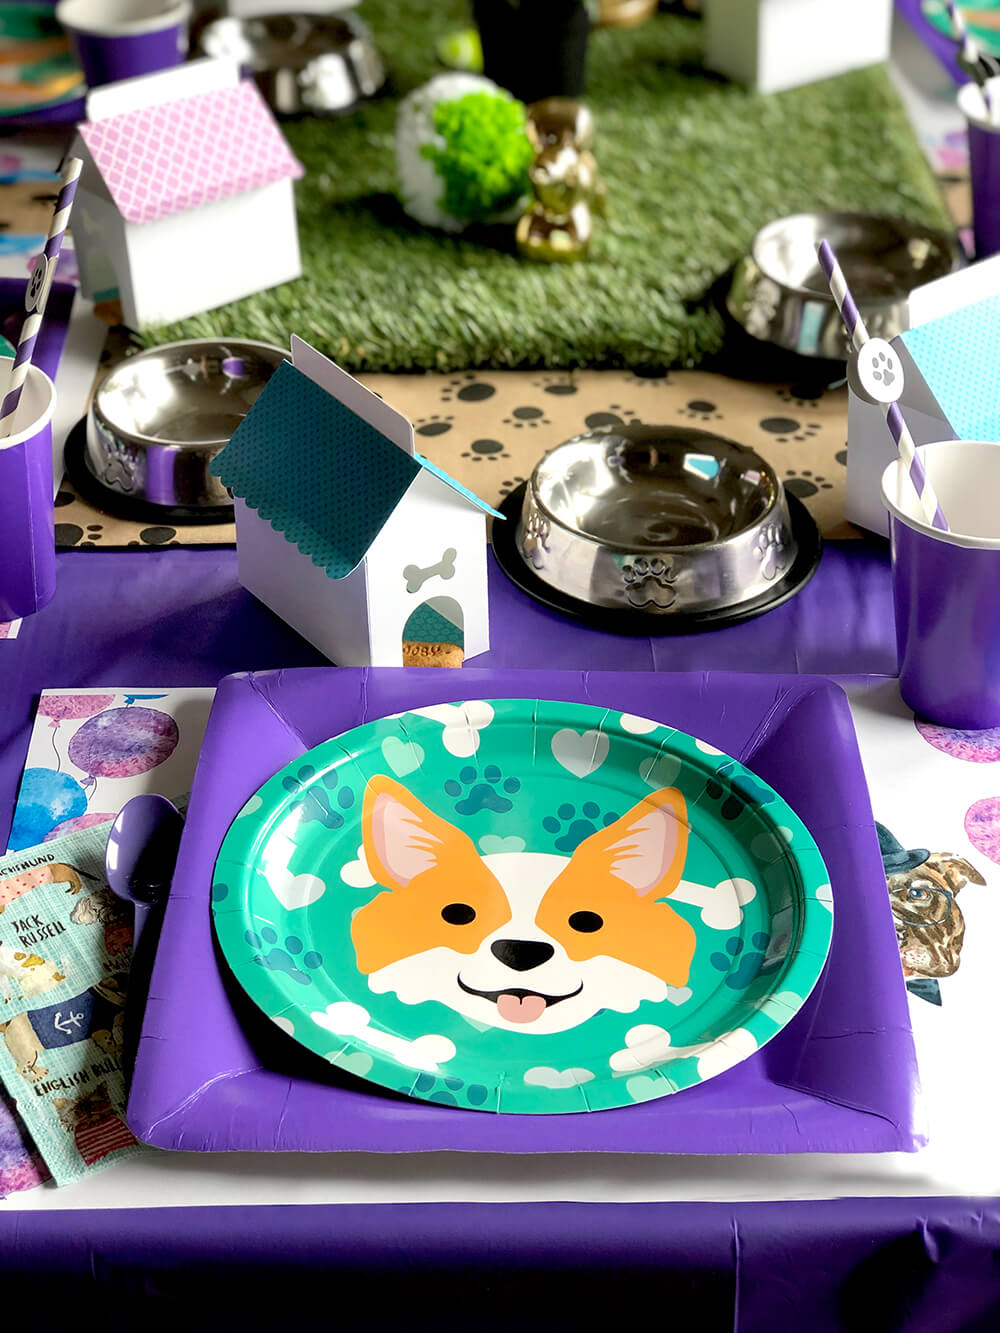 Puppy place setting - Dog Themed Puppy Birthday Party Ideas